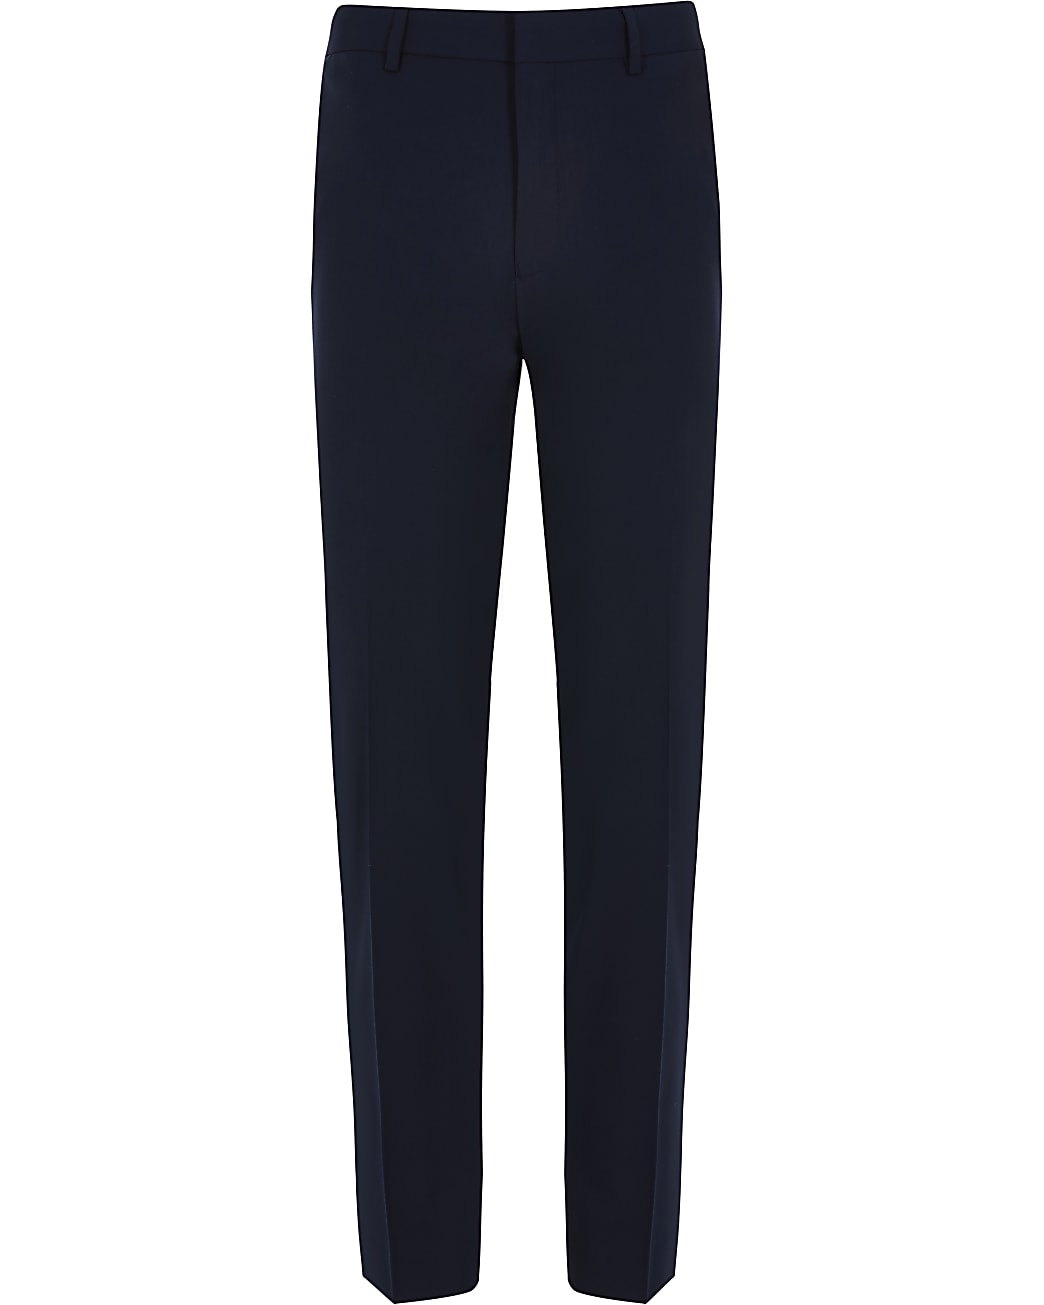 Navy skinny fit smart trousers